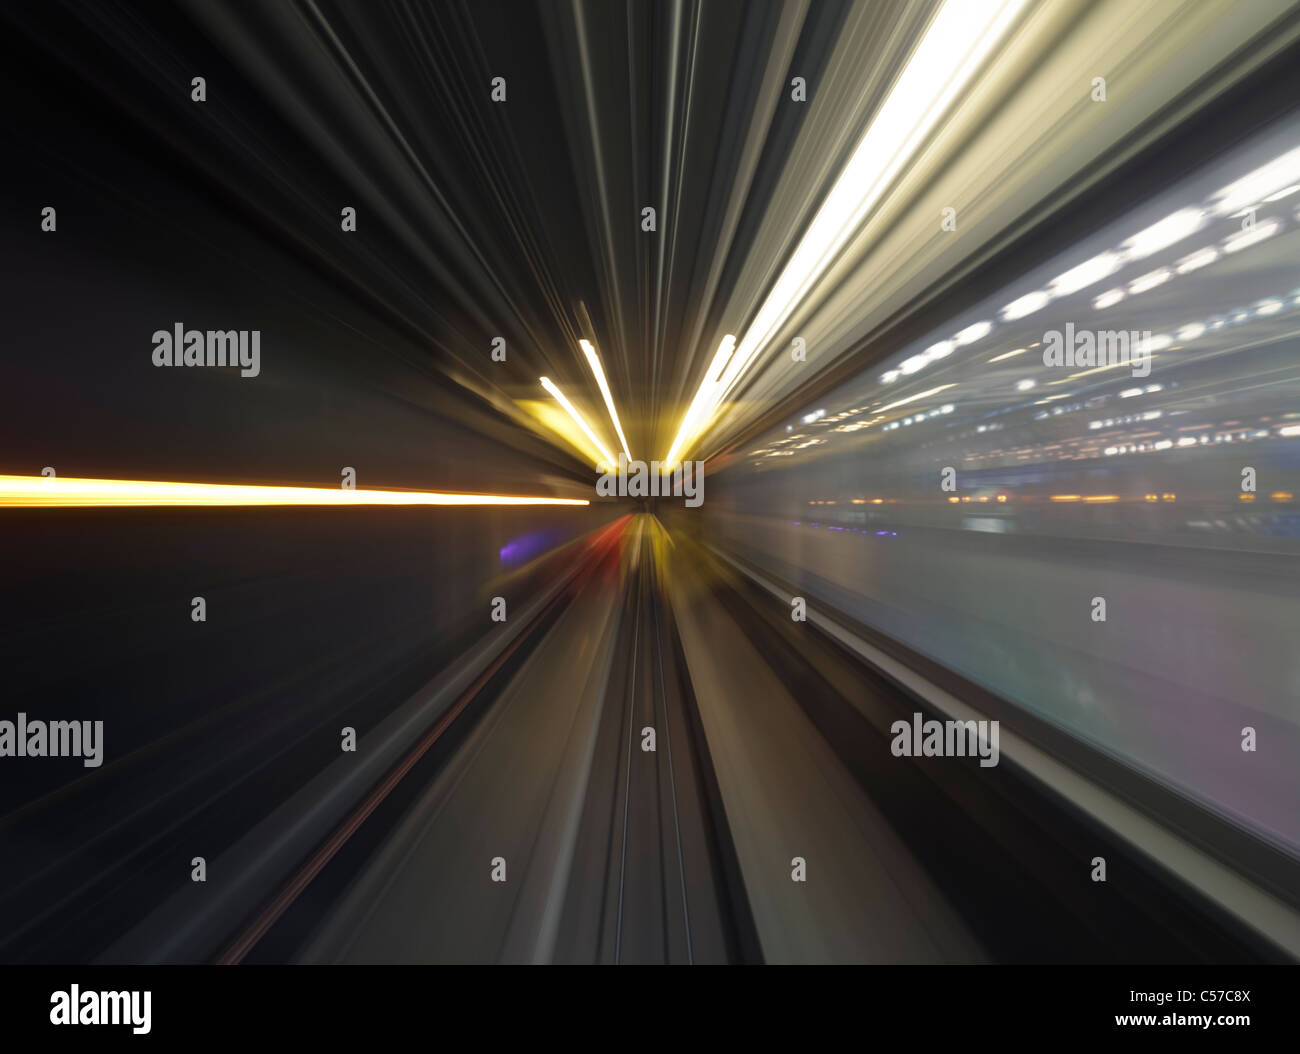 Long exposure of subway train ride - Stock Image